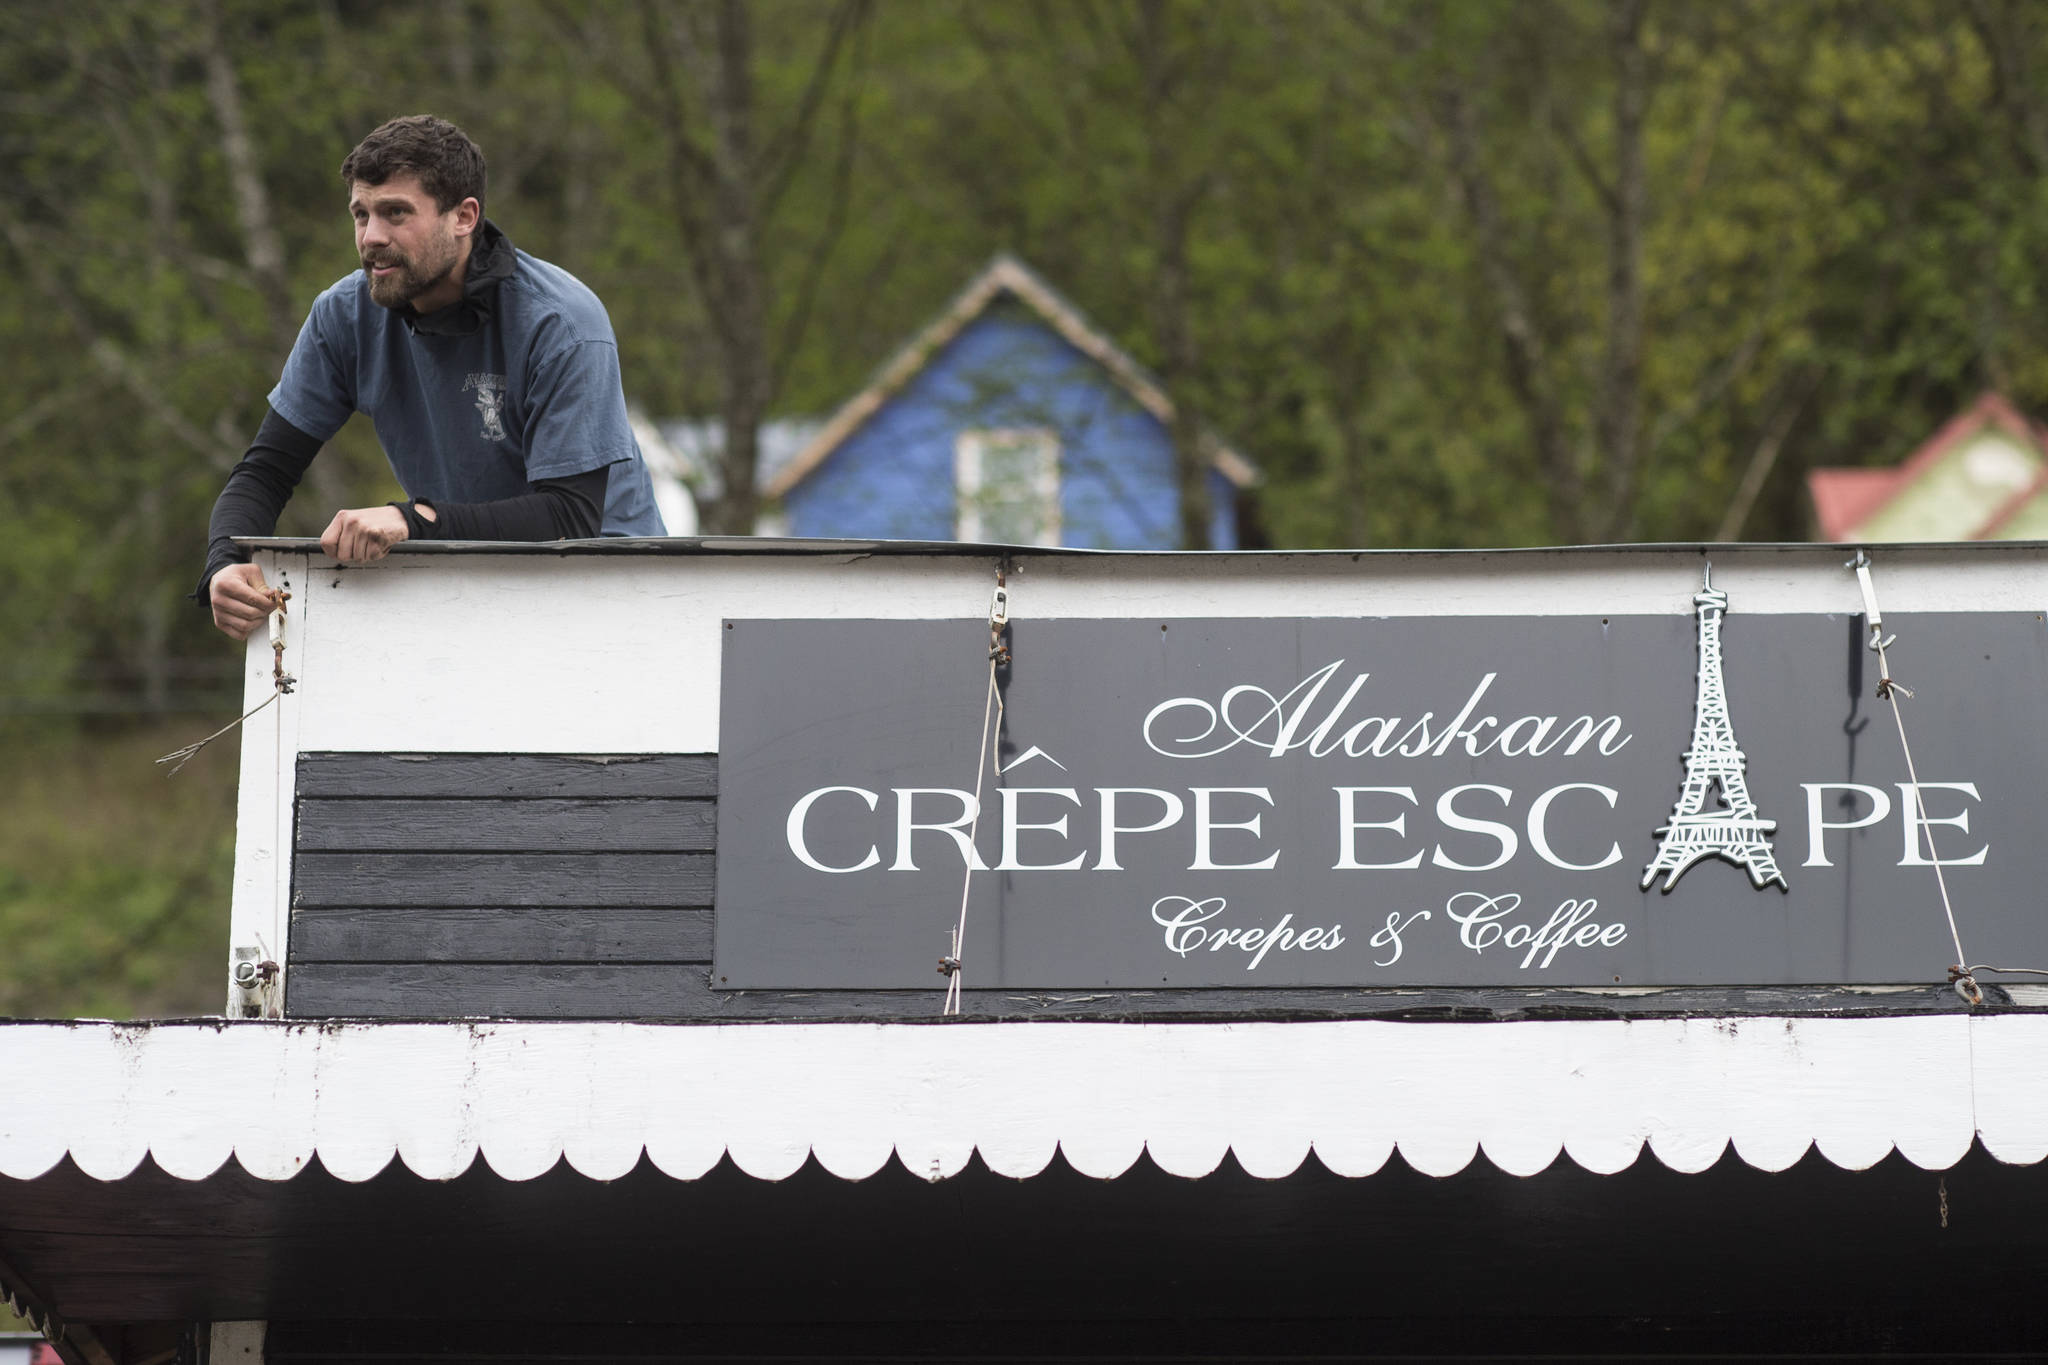 Dave McCasland, owner of Deckhand Dave's Fish Tacos, sets up lights on food truck businesses being setup at Gunakedeit Park, also known as Pocket Park, on Thursday, May 9, 2019. The businesses are expected to be open by Monday. (Michael Penn | Juneau Empire)